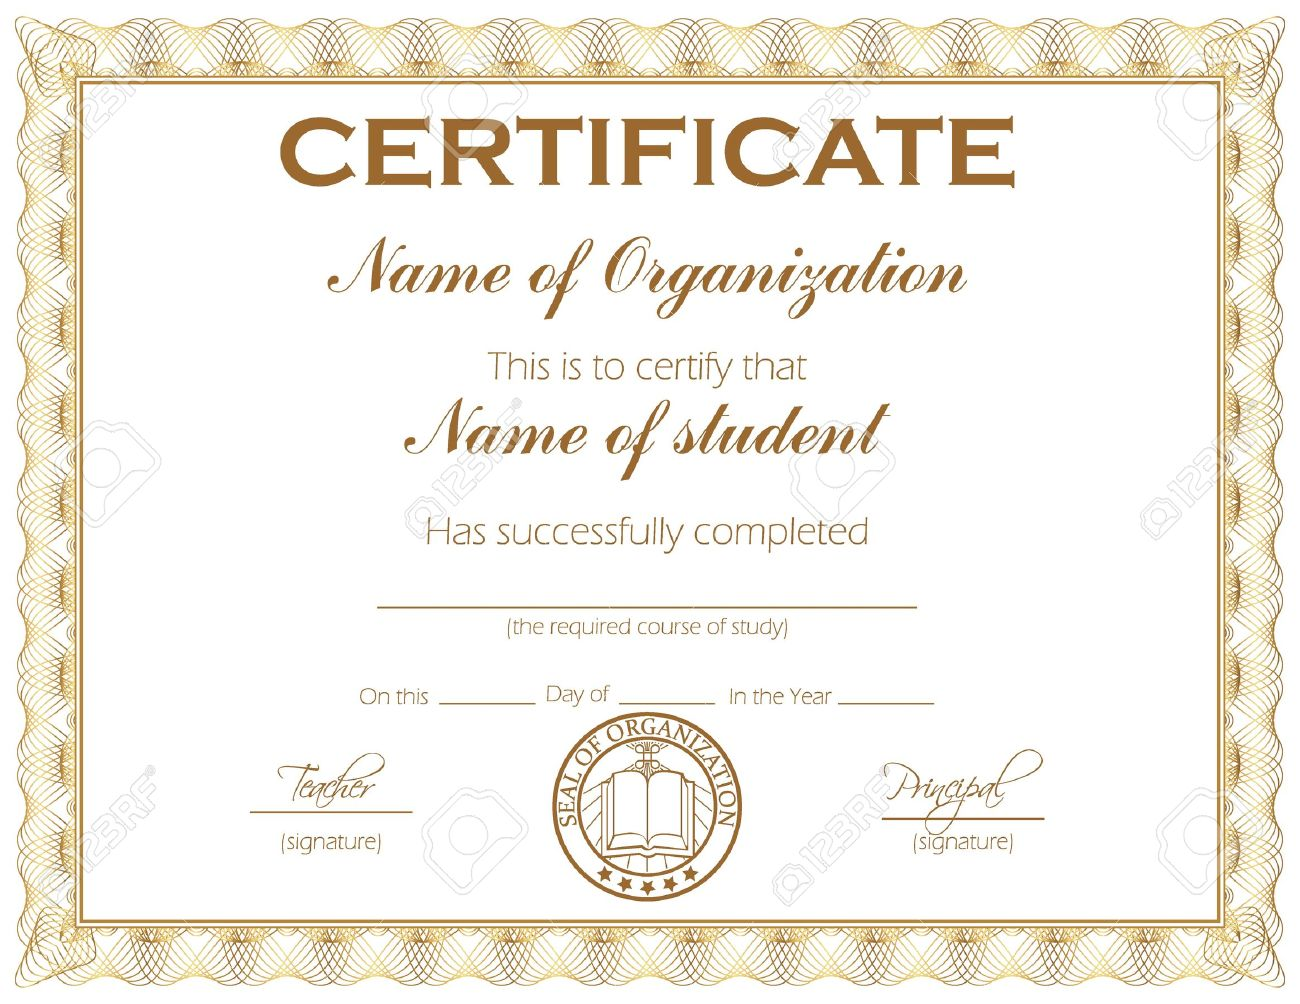 General Purpose Certificate Or Award With Sample Text That Can – Sample Certificate